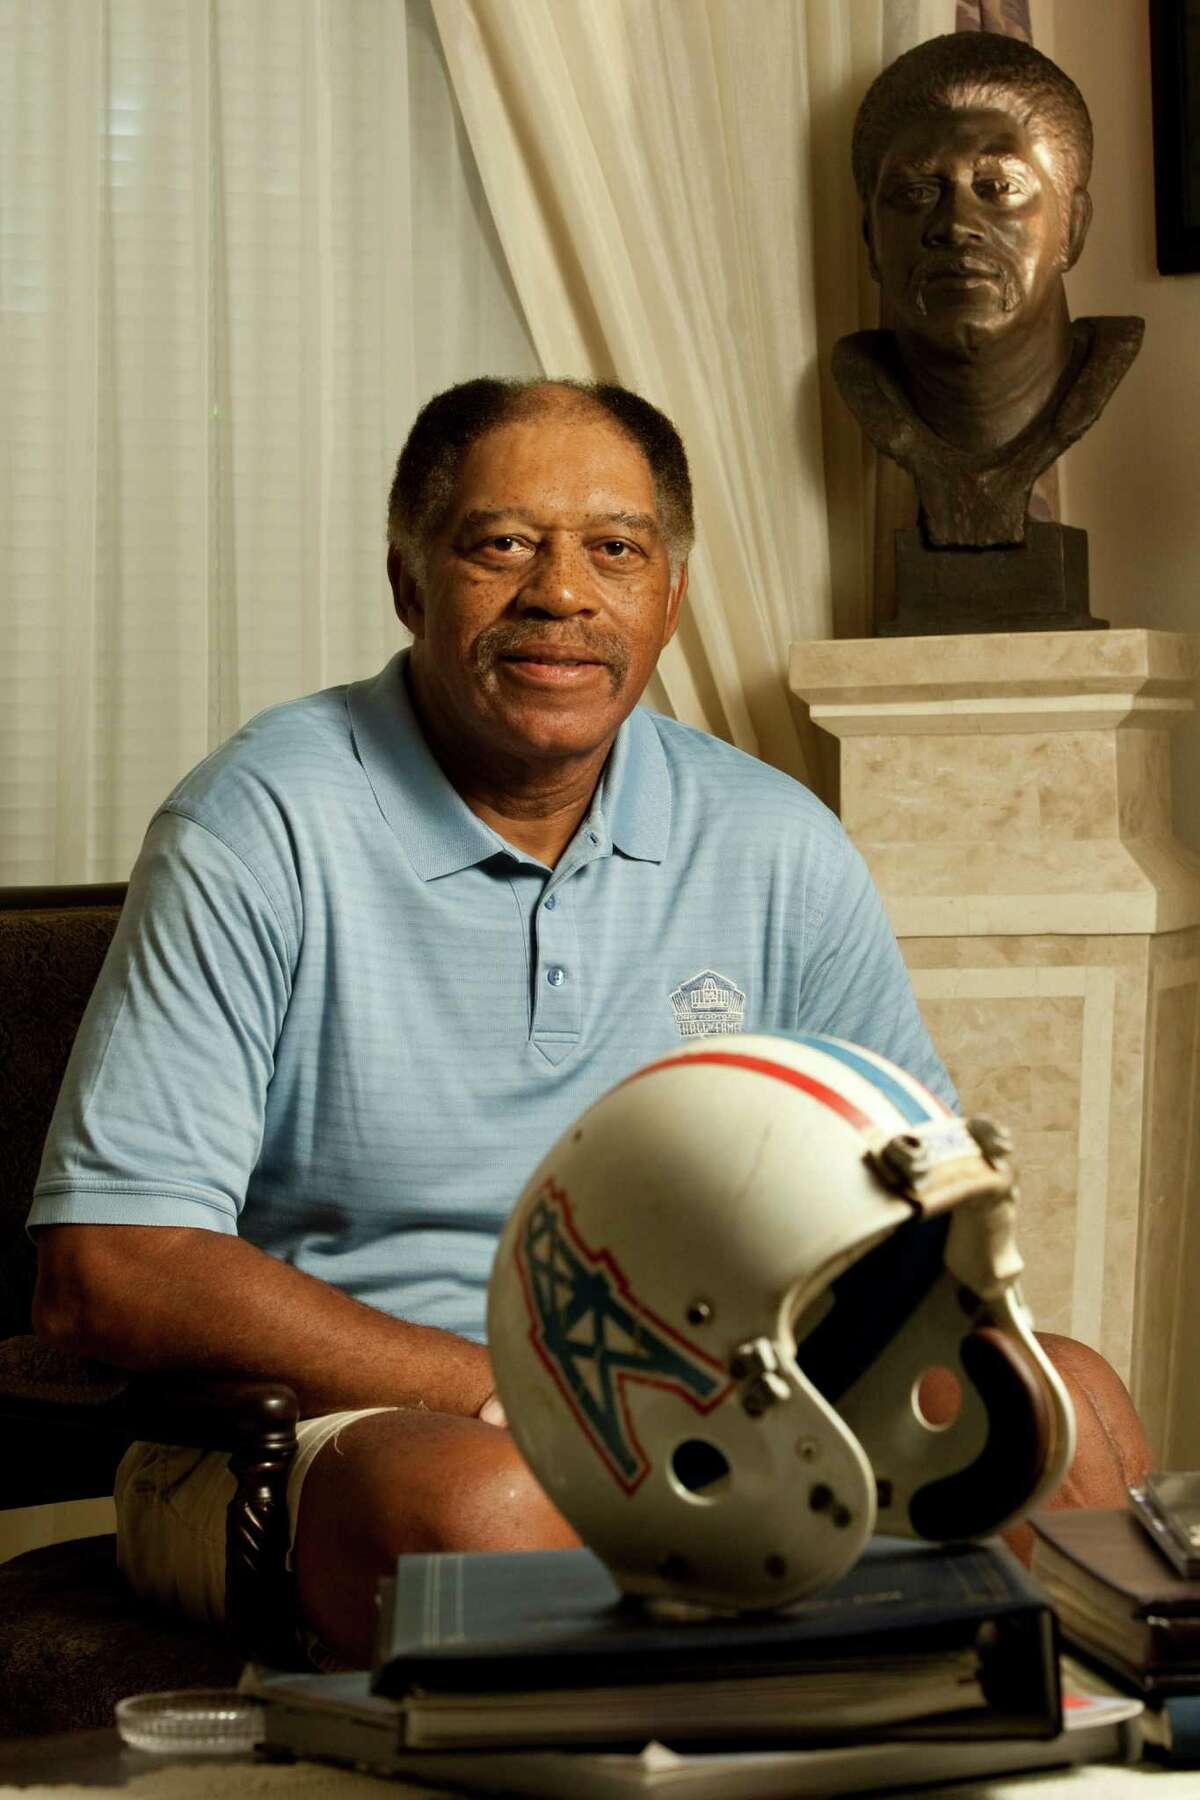 Houston Oiler great Elvin Bethea sits in front of his Hall of Fame bust Tuesday, Oct. 19, 2010, in his Missouri City home. Bethea played for 16-seasons and had an unofficial 105 sacks as a defensive lineman. ( Nick de la Torre / Houston Chronicle )